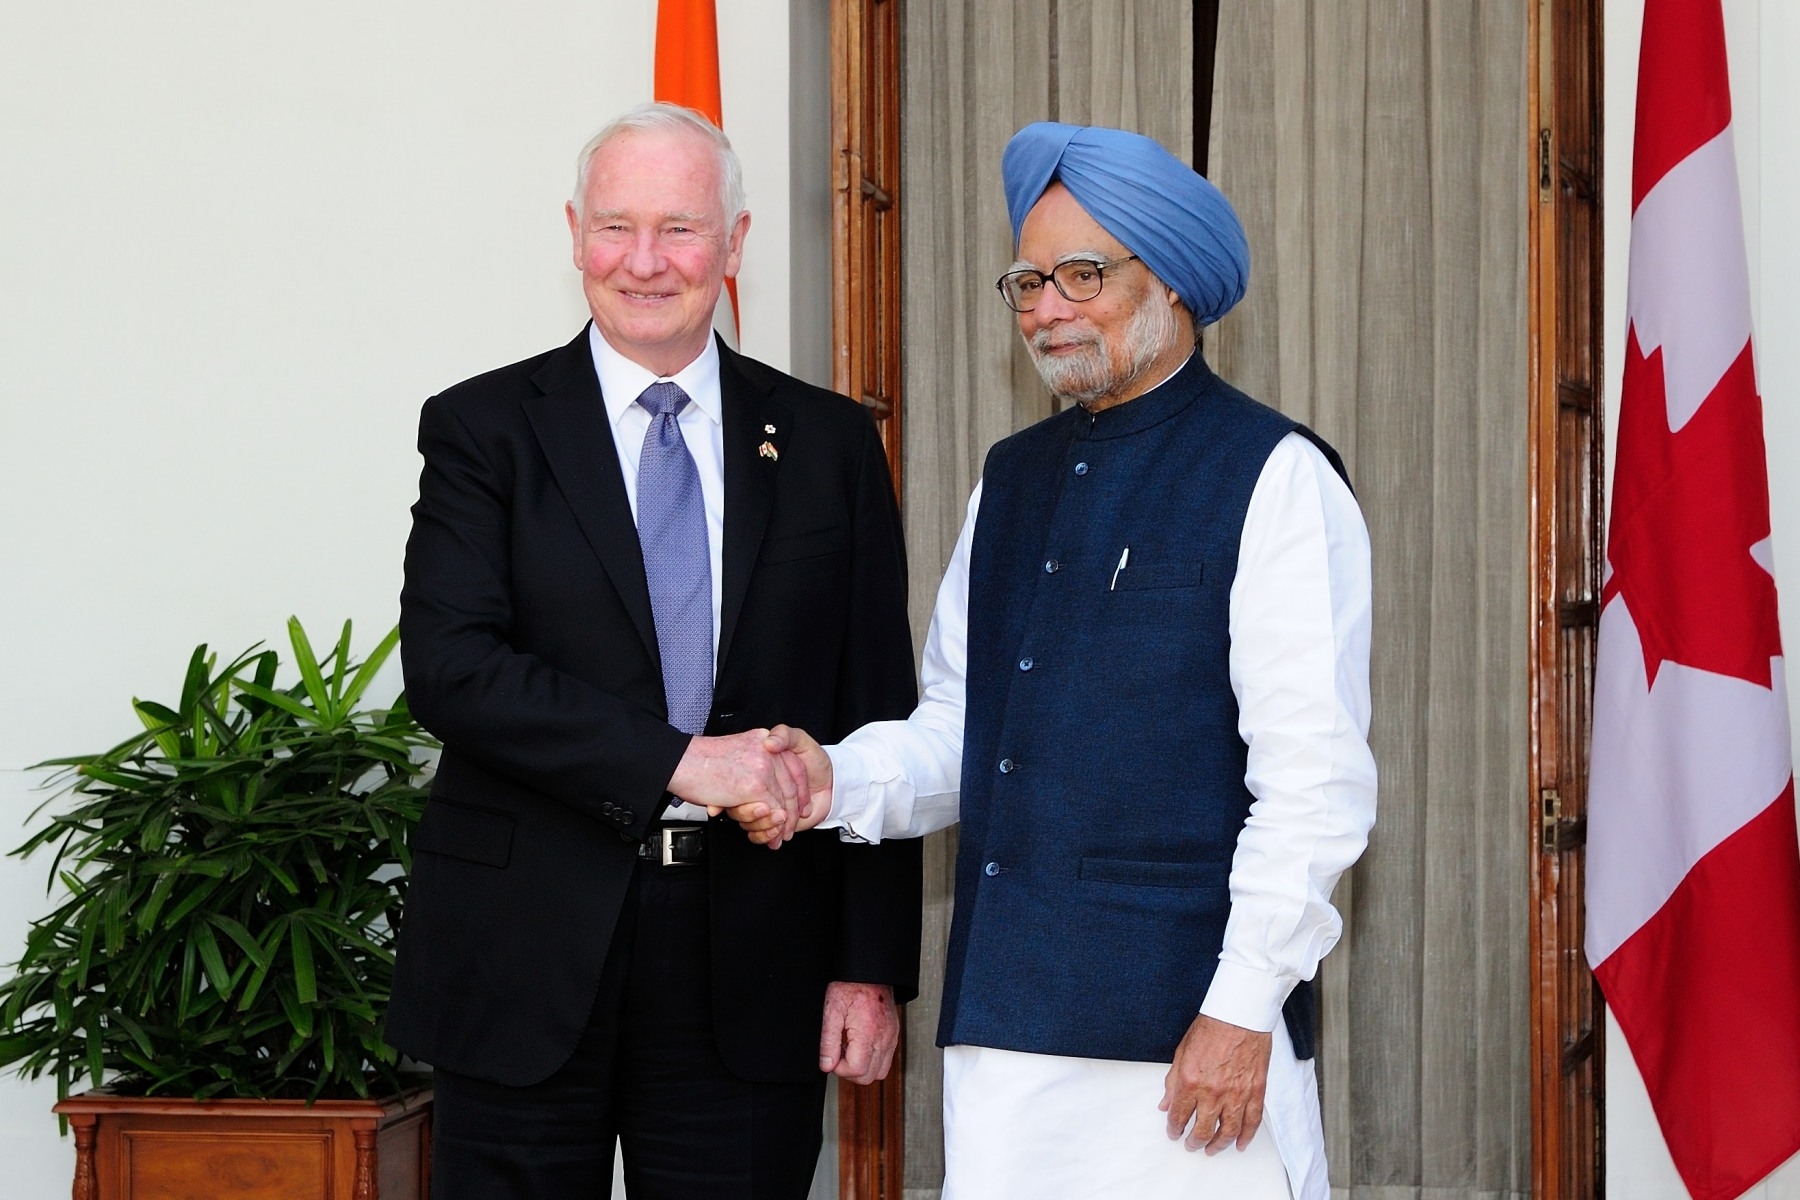 The Governor General also met with His Excellency the Honourable Dr. Manhoman Singh, Prime Minister of India, to discuss Canada-India's bilateral relationship.